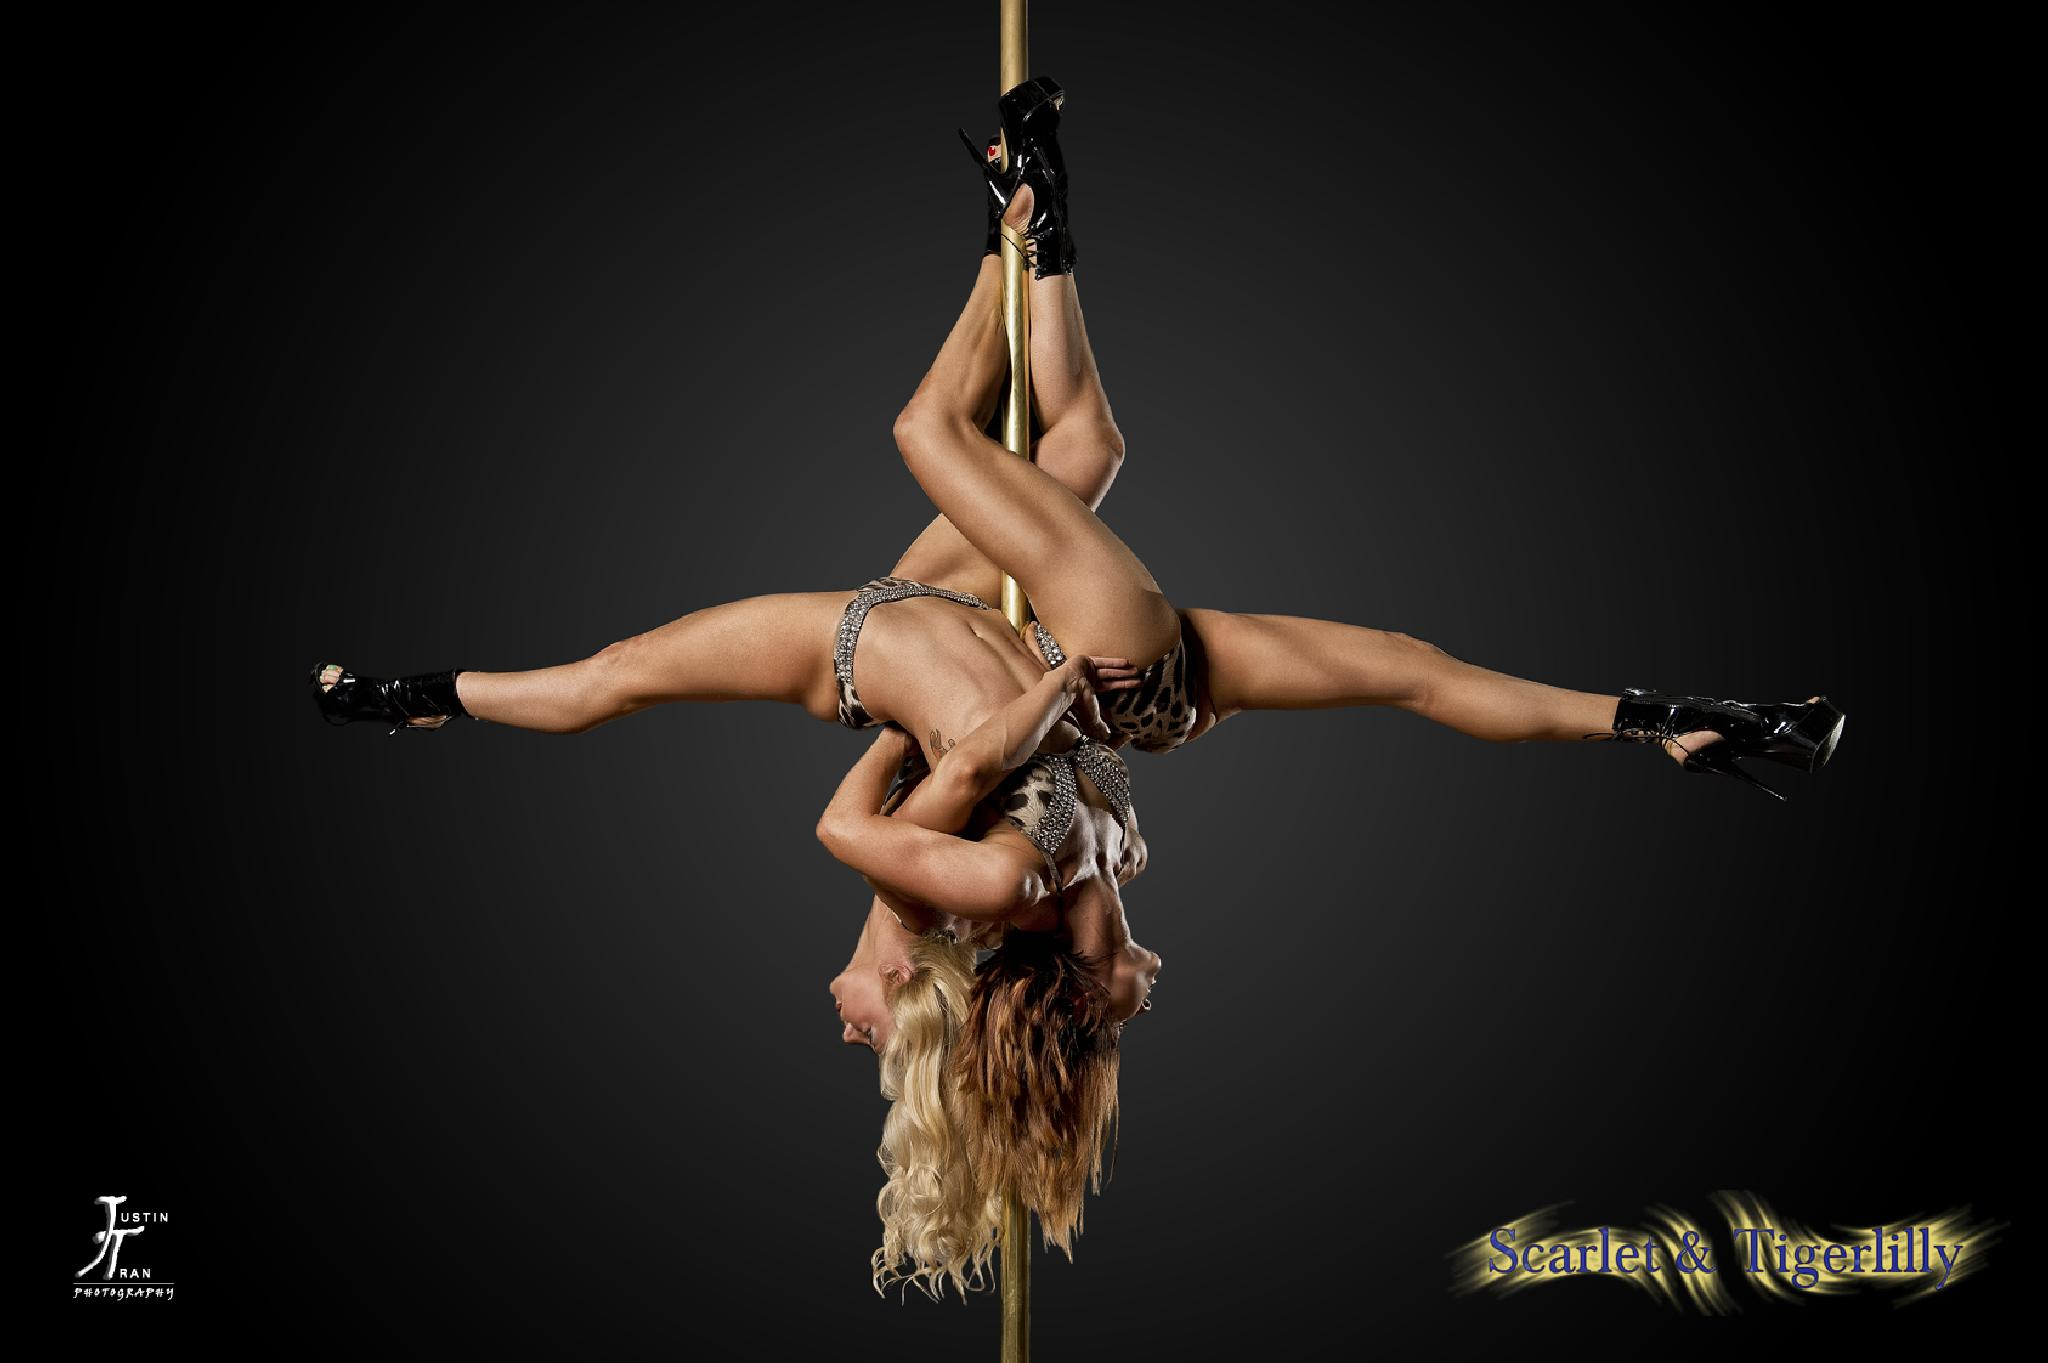 Pole Dancing - Intertwined by Justin Tran